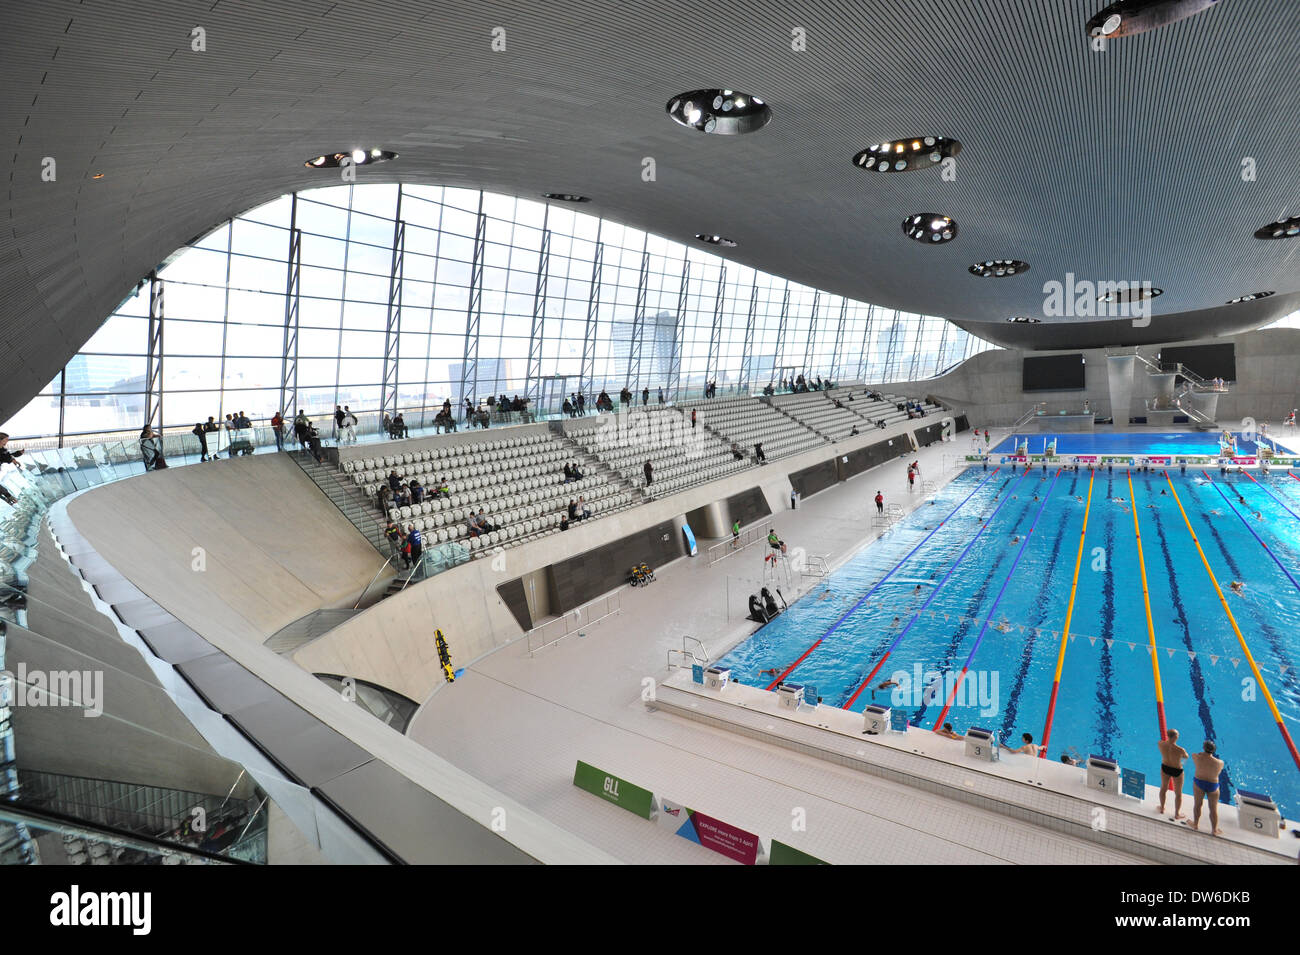 Beau Queen Elizabeth Olympic Park, Stratford, London, UK. 1st March 2014. The Olympic  Pool In The Aquatic Centre At The Queen Elizabeth Olympic Park In Stratford  ...